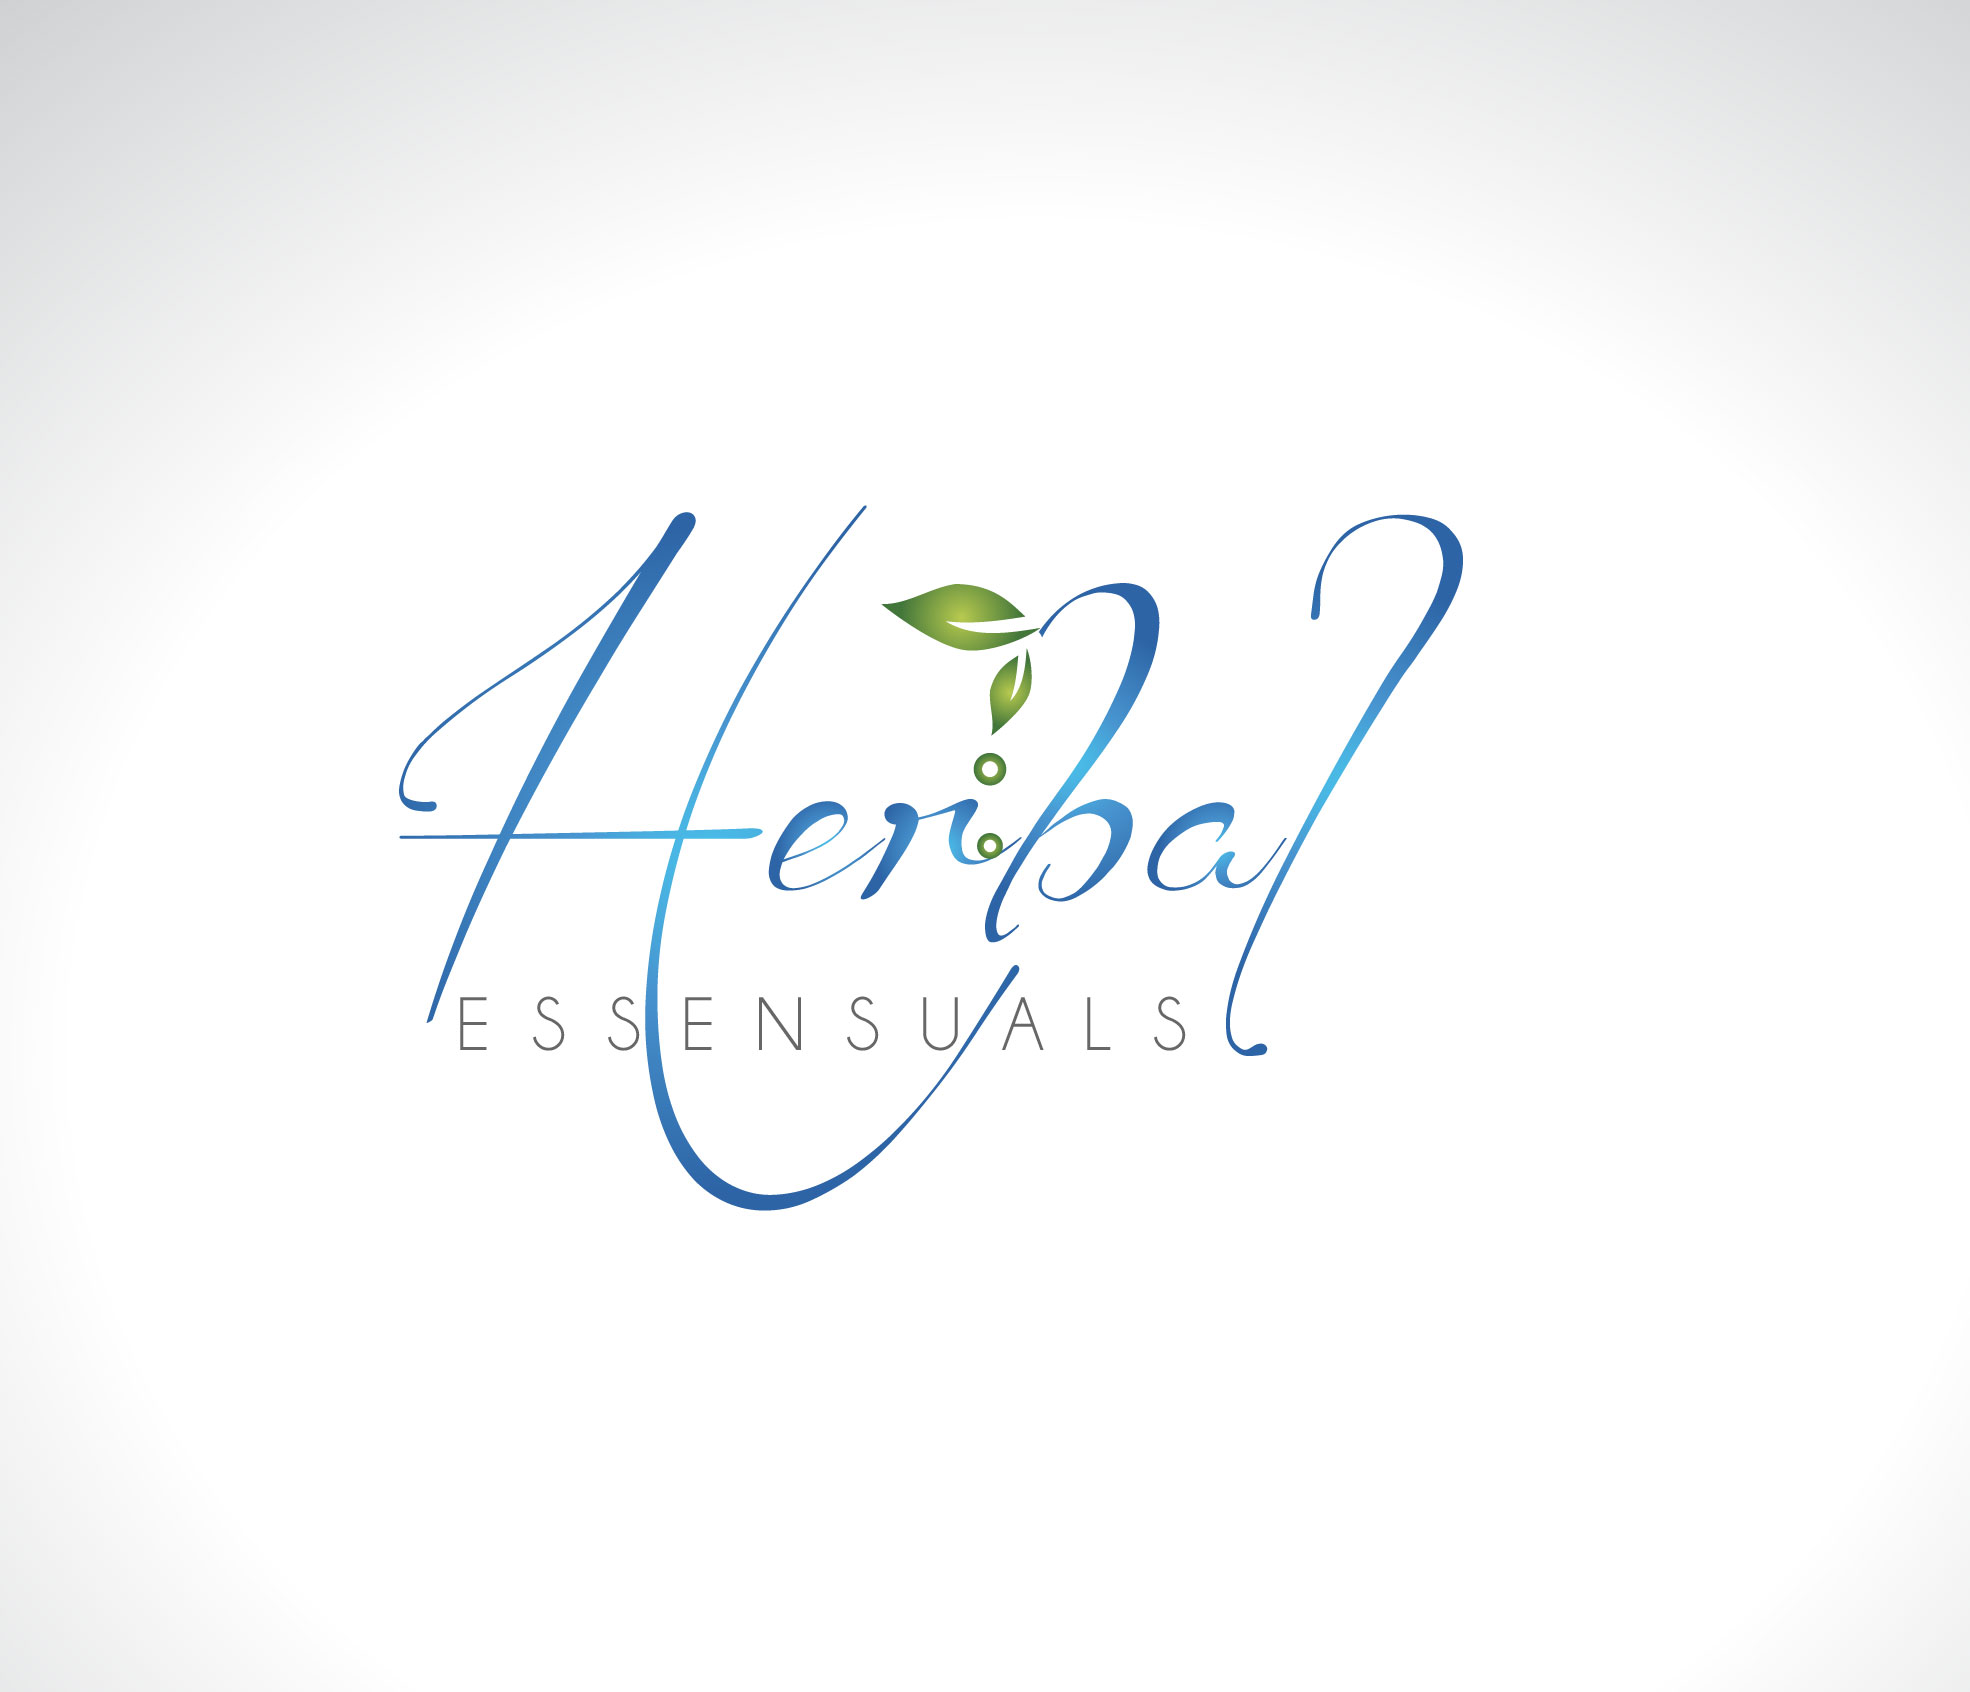 Logo Design by Darina Dimitrova - Entry No. 80 in the Logo Design Contest Captivating Logo Design for Herbal Essensuals.